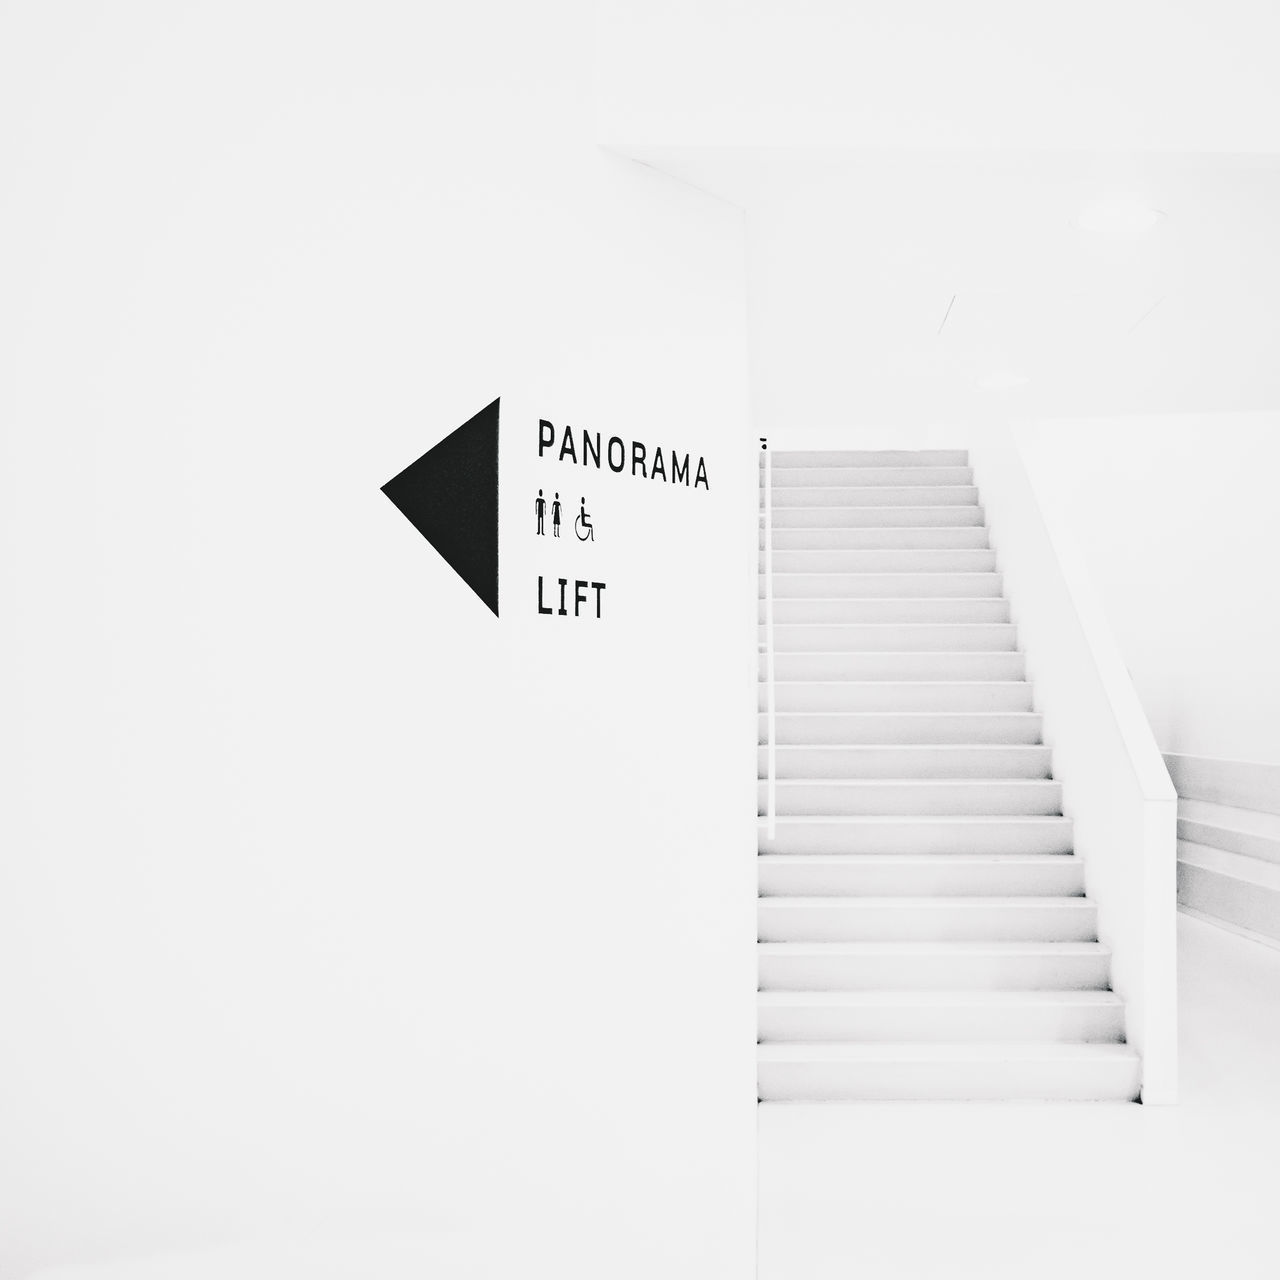 INFORMATION SIGN ON STAIRCASE